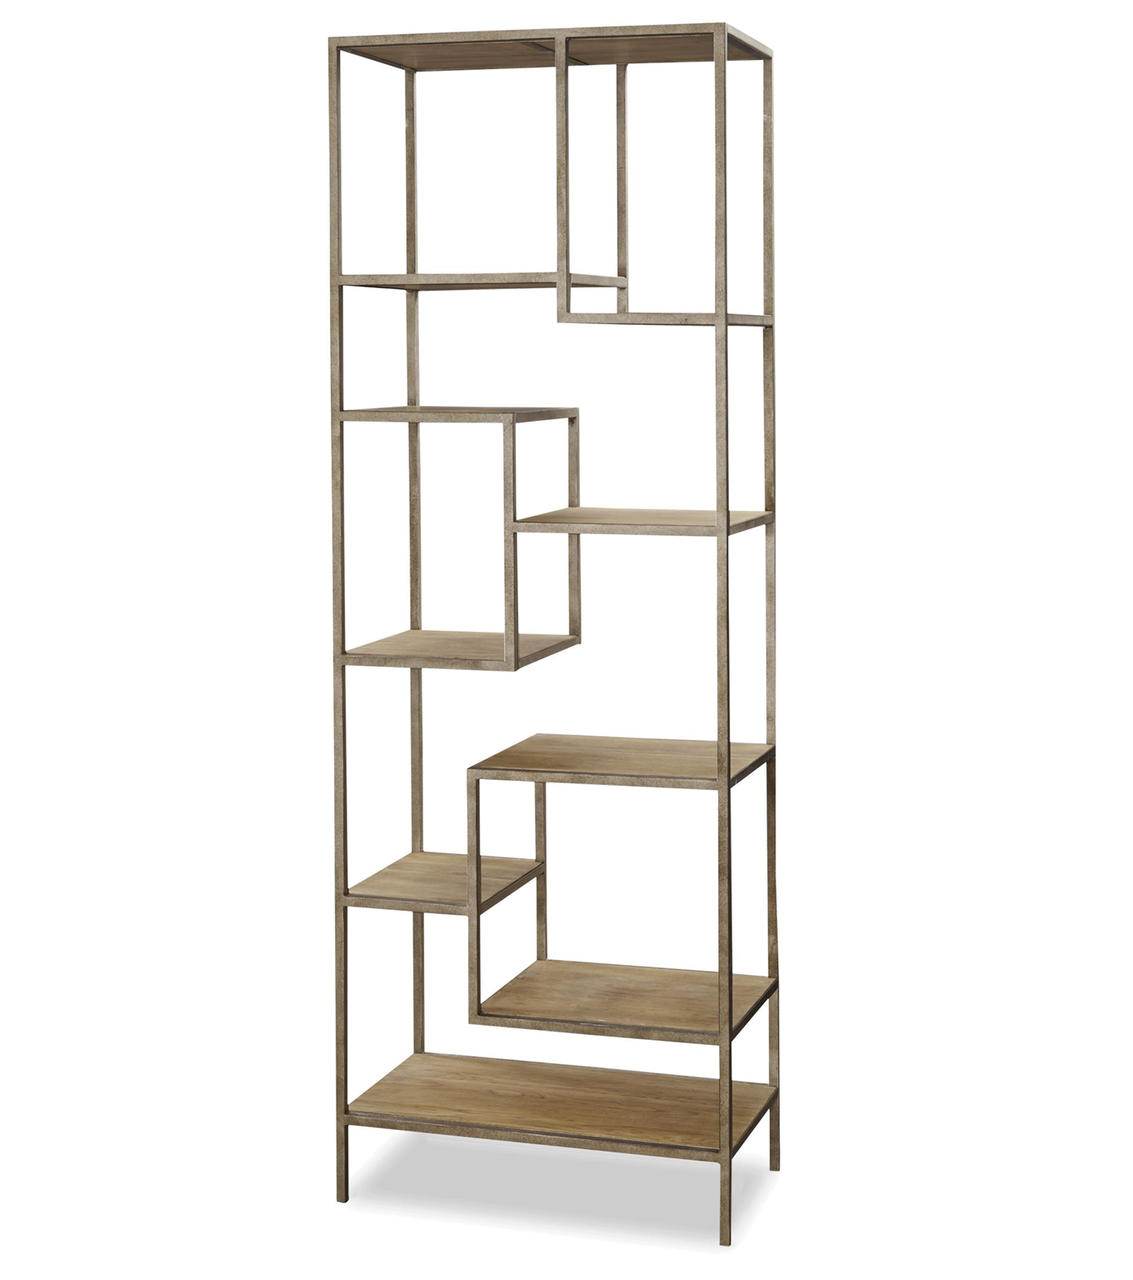 french modern industrial wood  metal bookcase etagere  zin home - french modern industrial wood  metal bookcase etagere